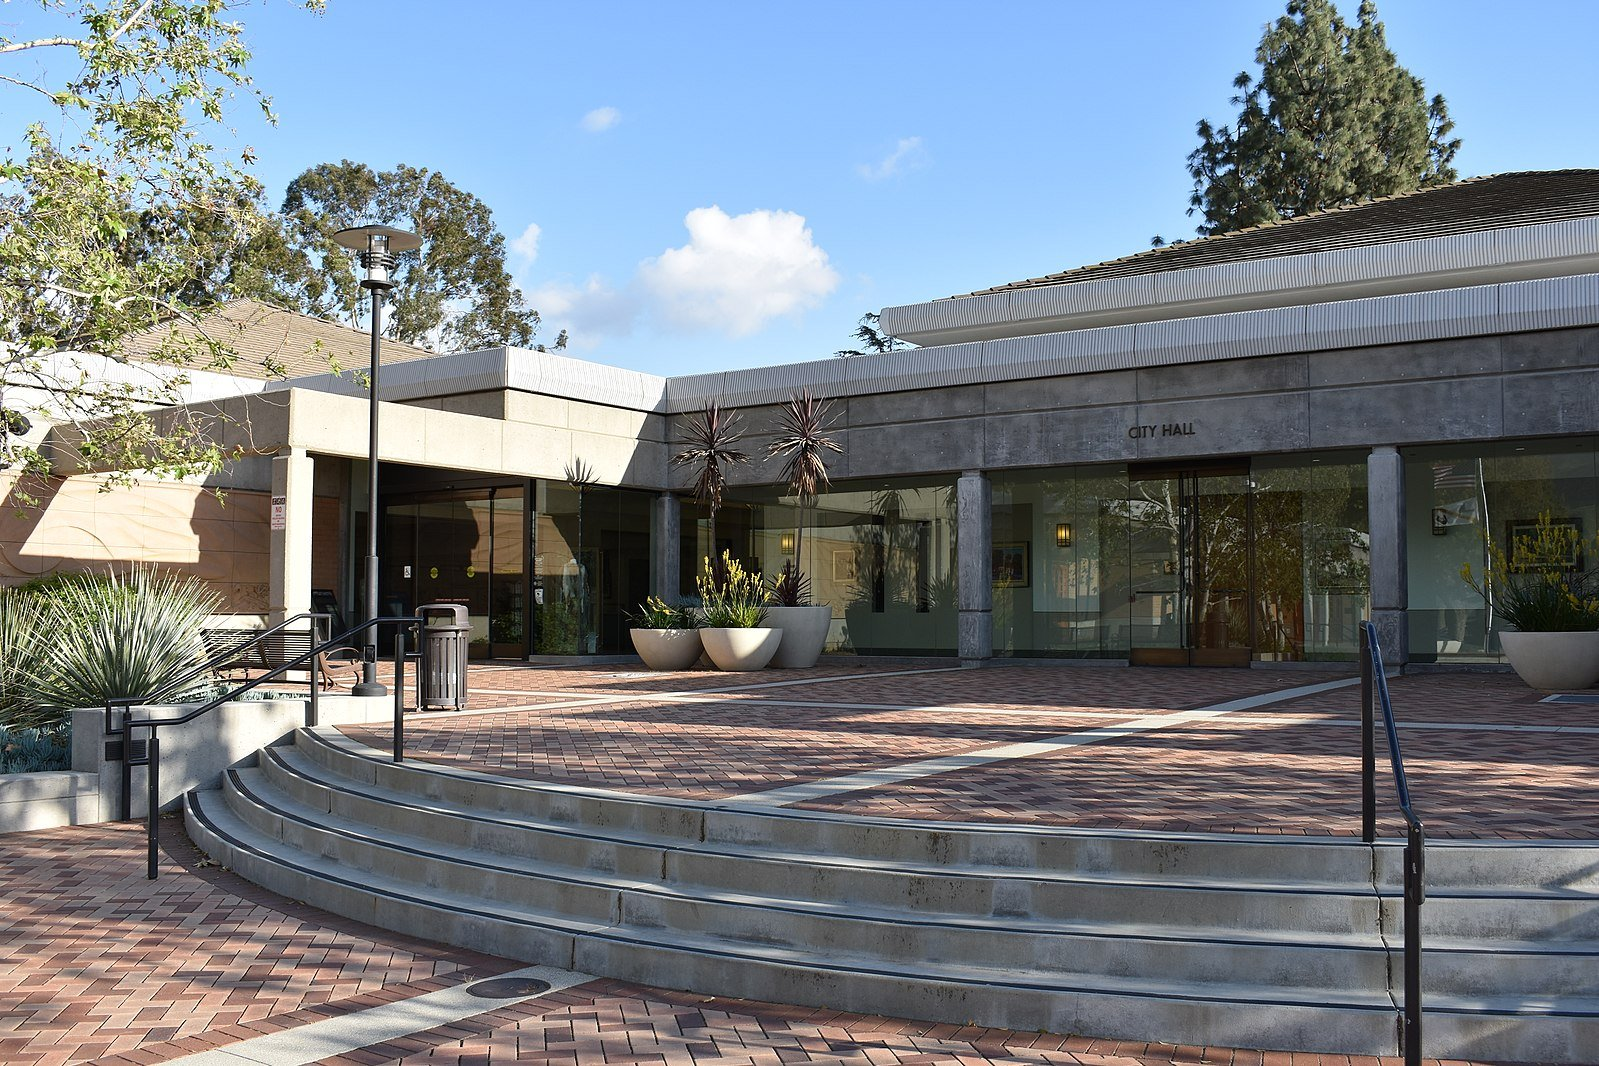 1599px San Dimas City Hall 25 Totally Non-Heinous Facts About Bill & Ted's Excellent Adventure!